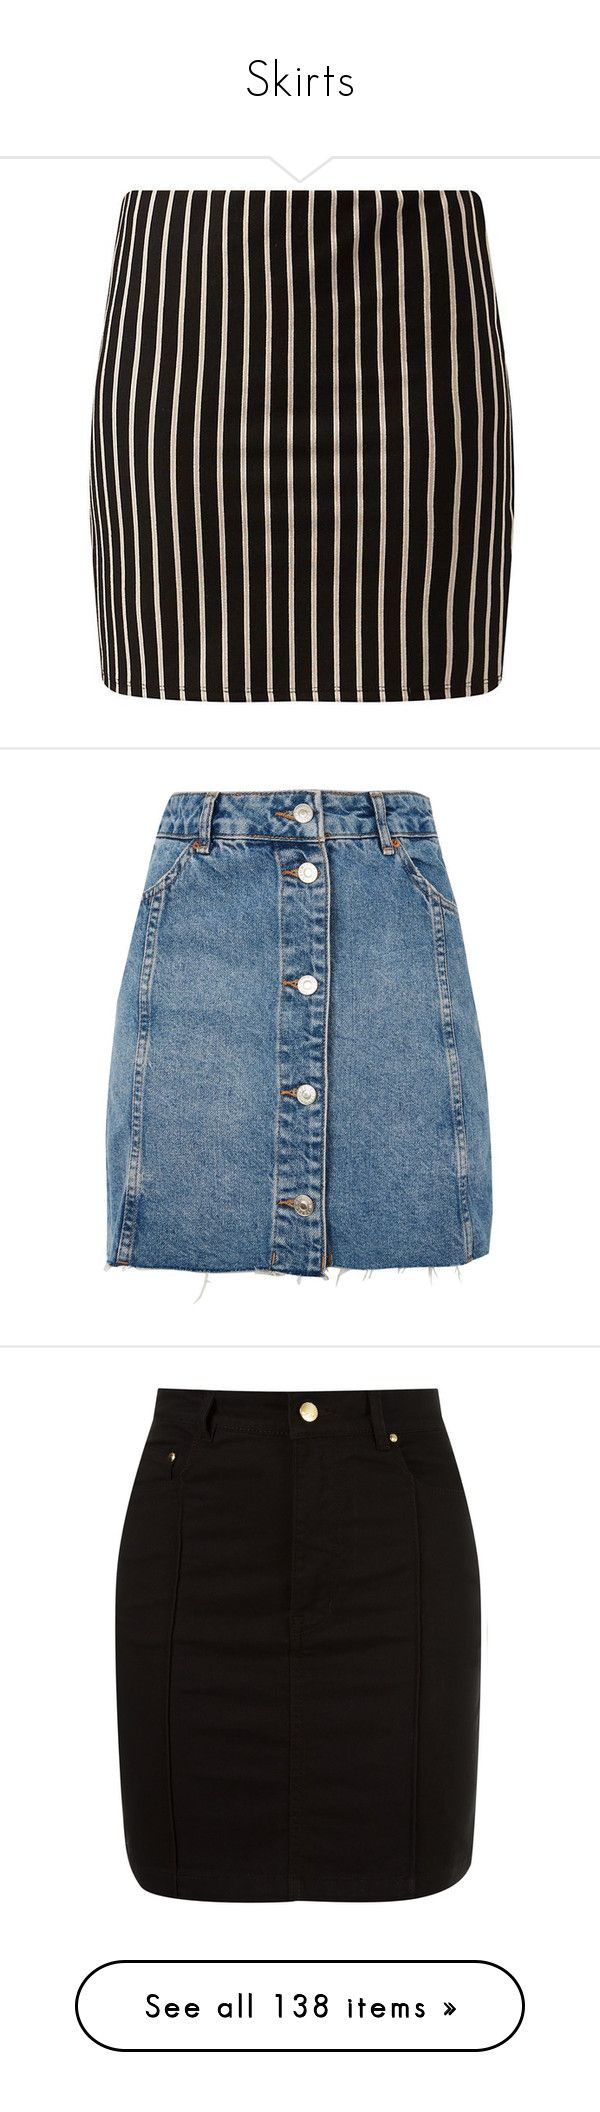 """""""Skirts"""" by selia-101 ❤ liked on Polyvore featuring skirts, mini skirts, faldas, bottoms, pinstripe skirt, body con skirt, bodycon skirt, camel mini skirt, pinstripe mini skirt and topshop"""